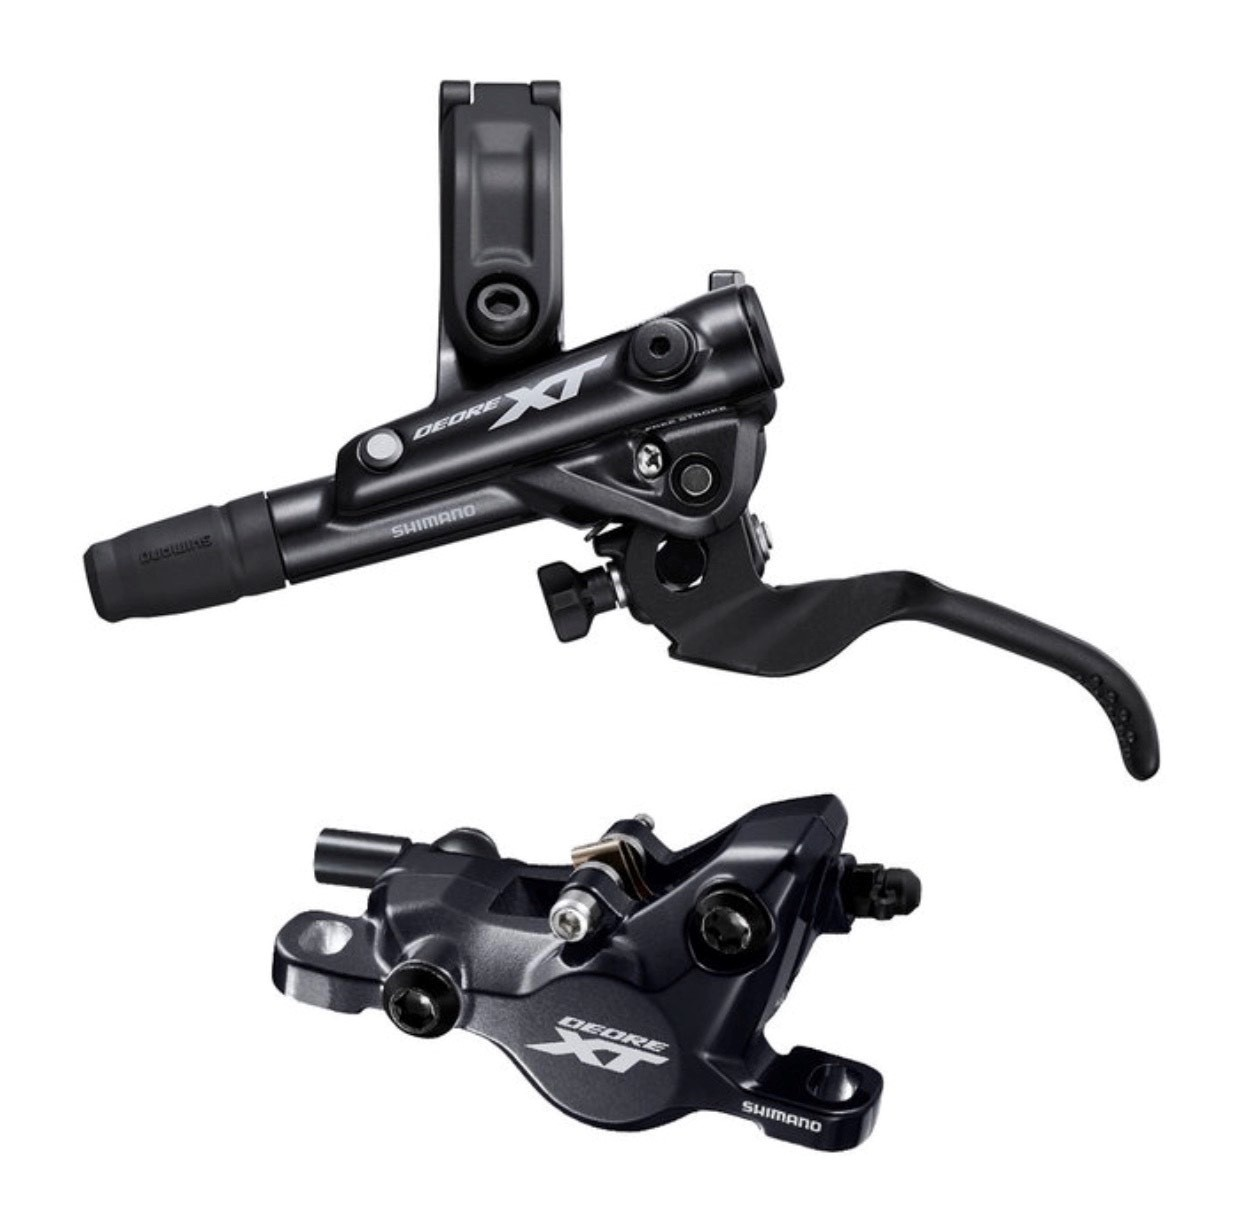 Shimano Deore XT BL-M8100/BR-M8100 Disc Brake and Lever - Front, Hydraulic, Post Mount, 2-Piston, Black-1